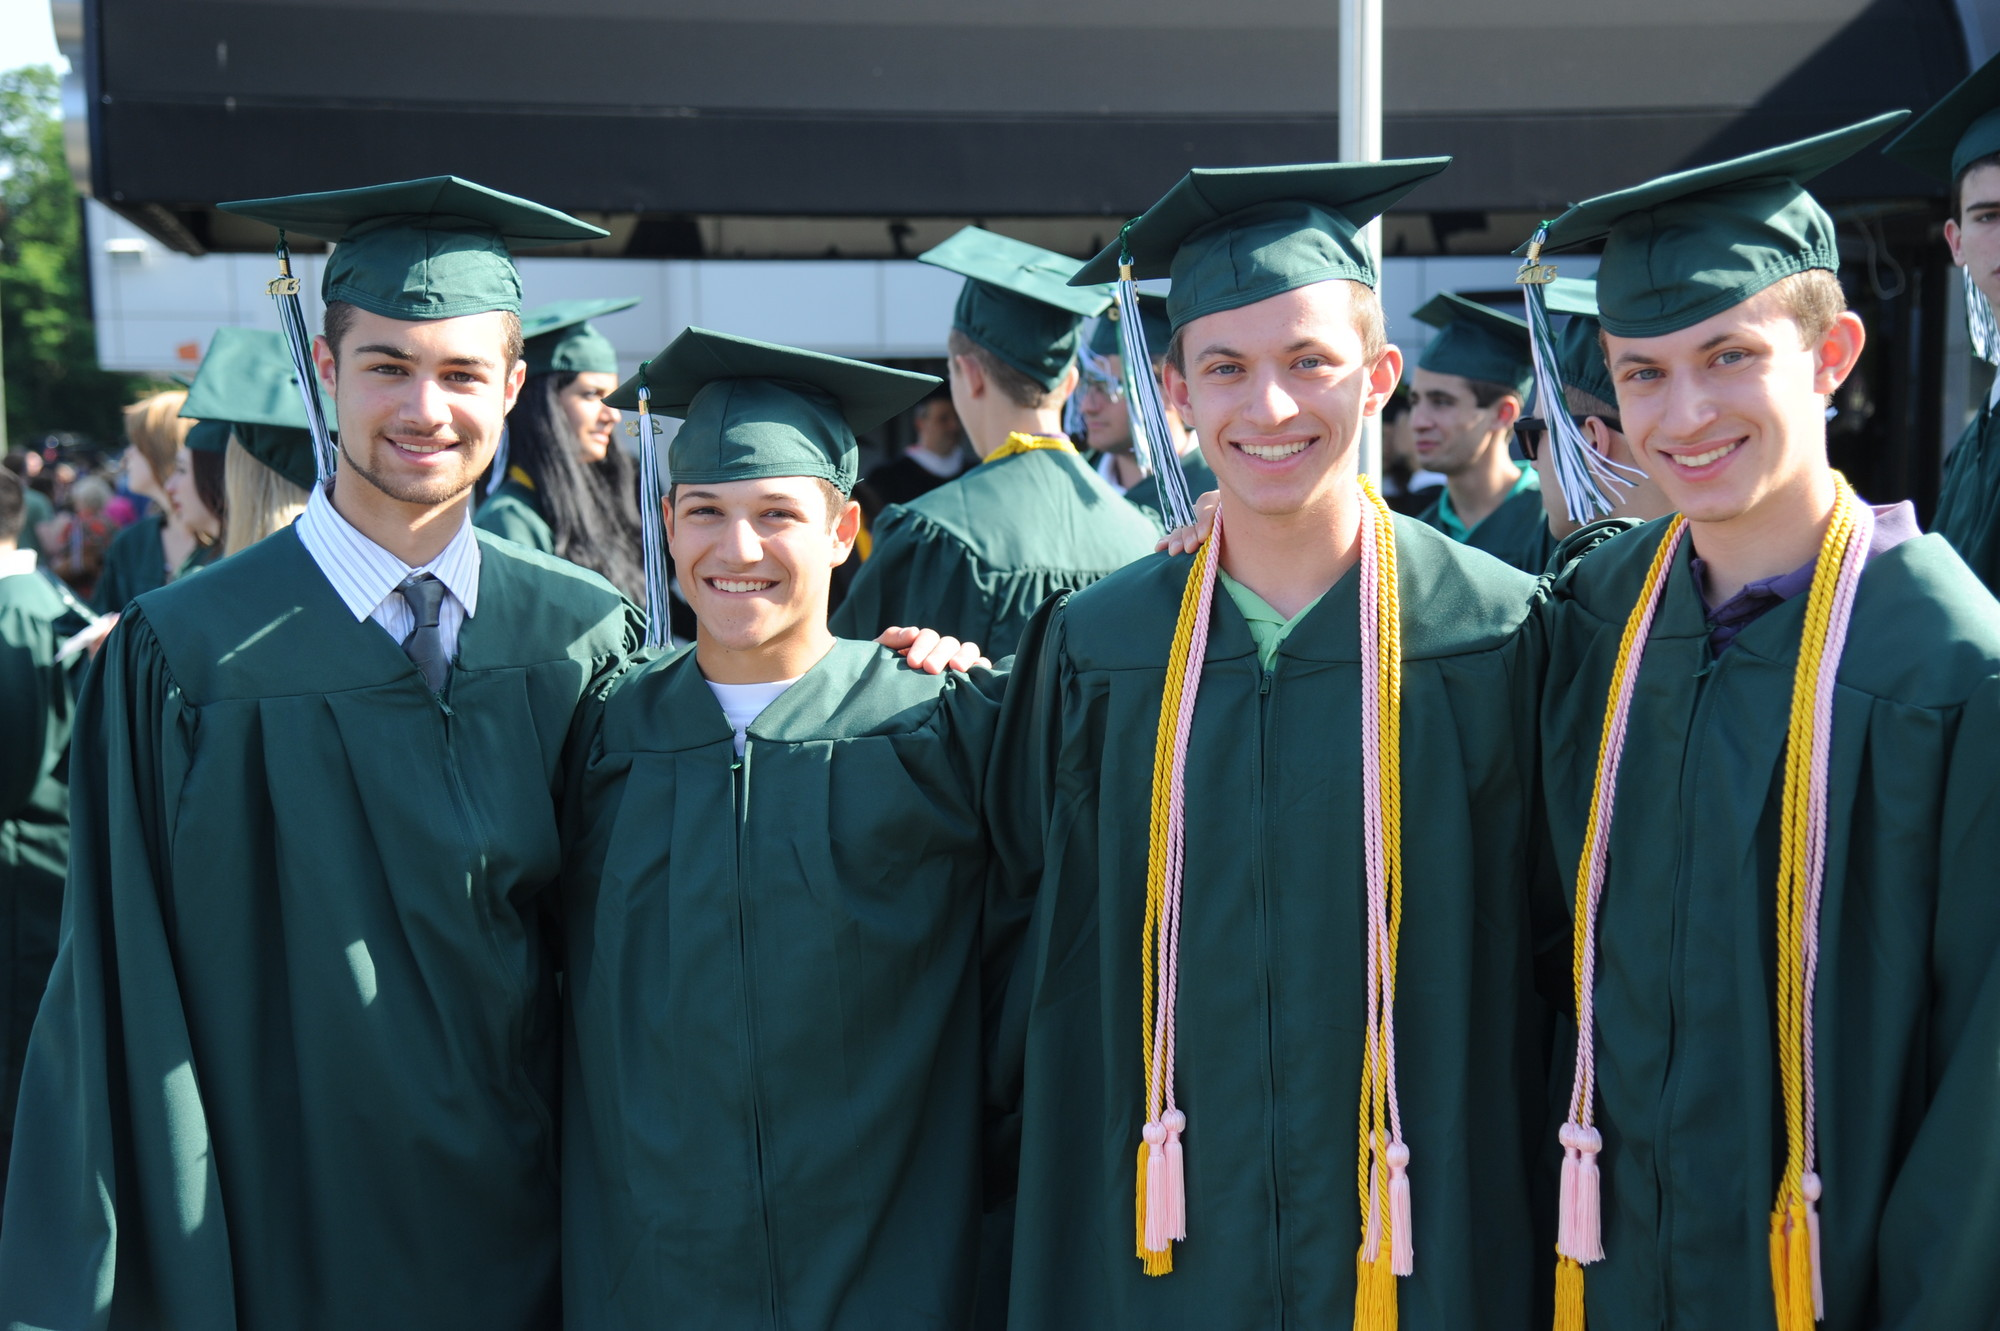 Michael Lopalo, Michael Librizzi, Blake Lingenau, and Dylan Lingenau flashed smiles at their graduation.